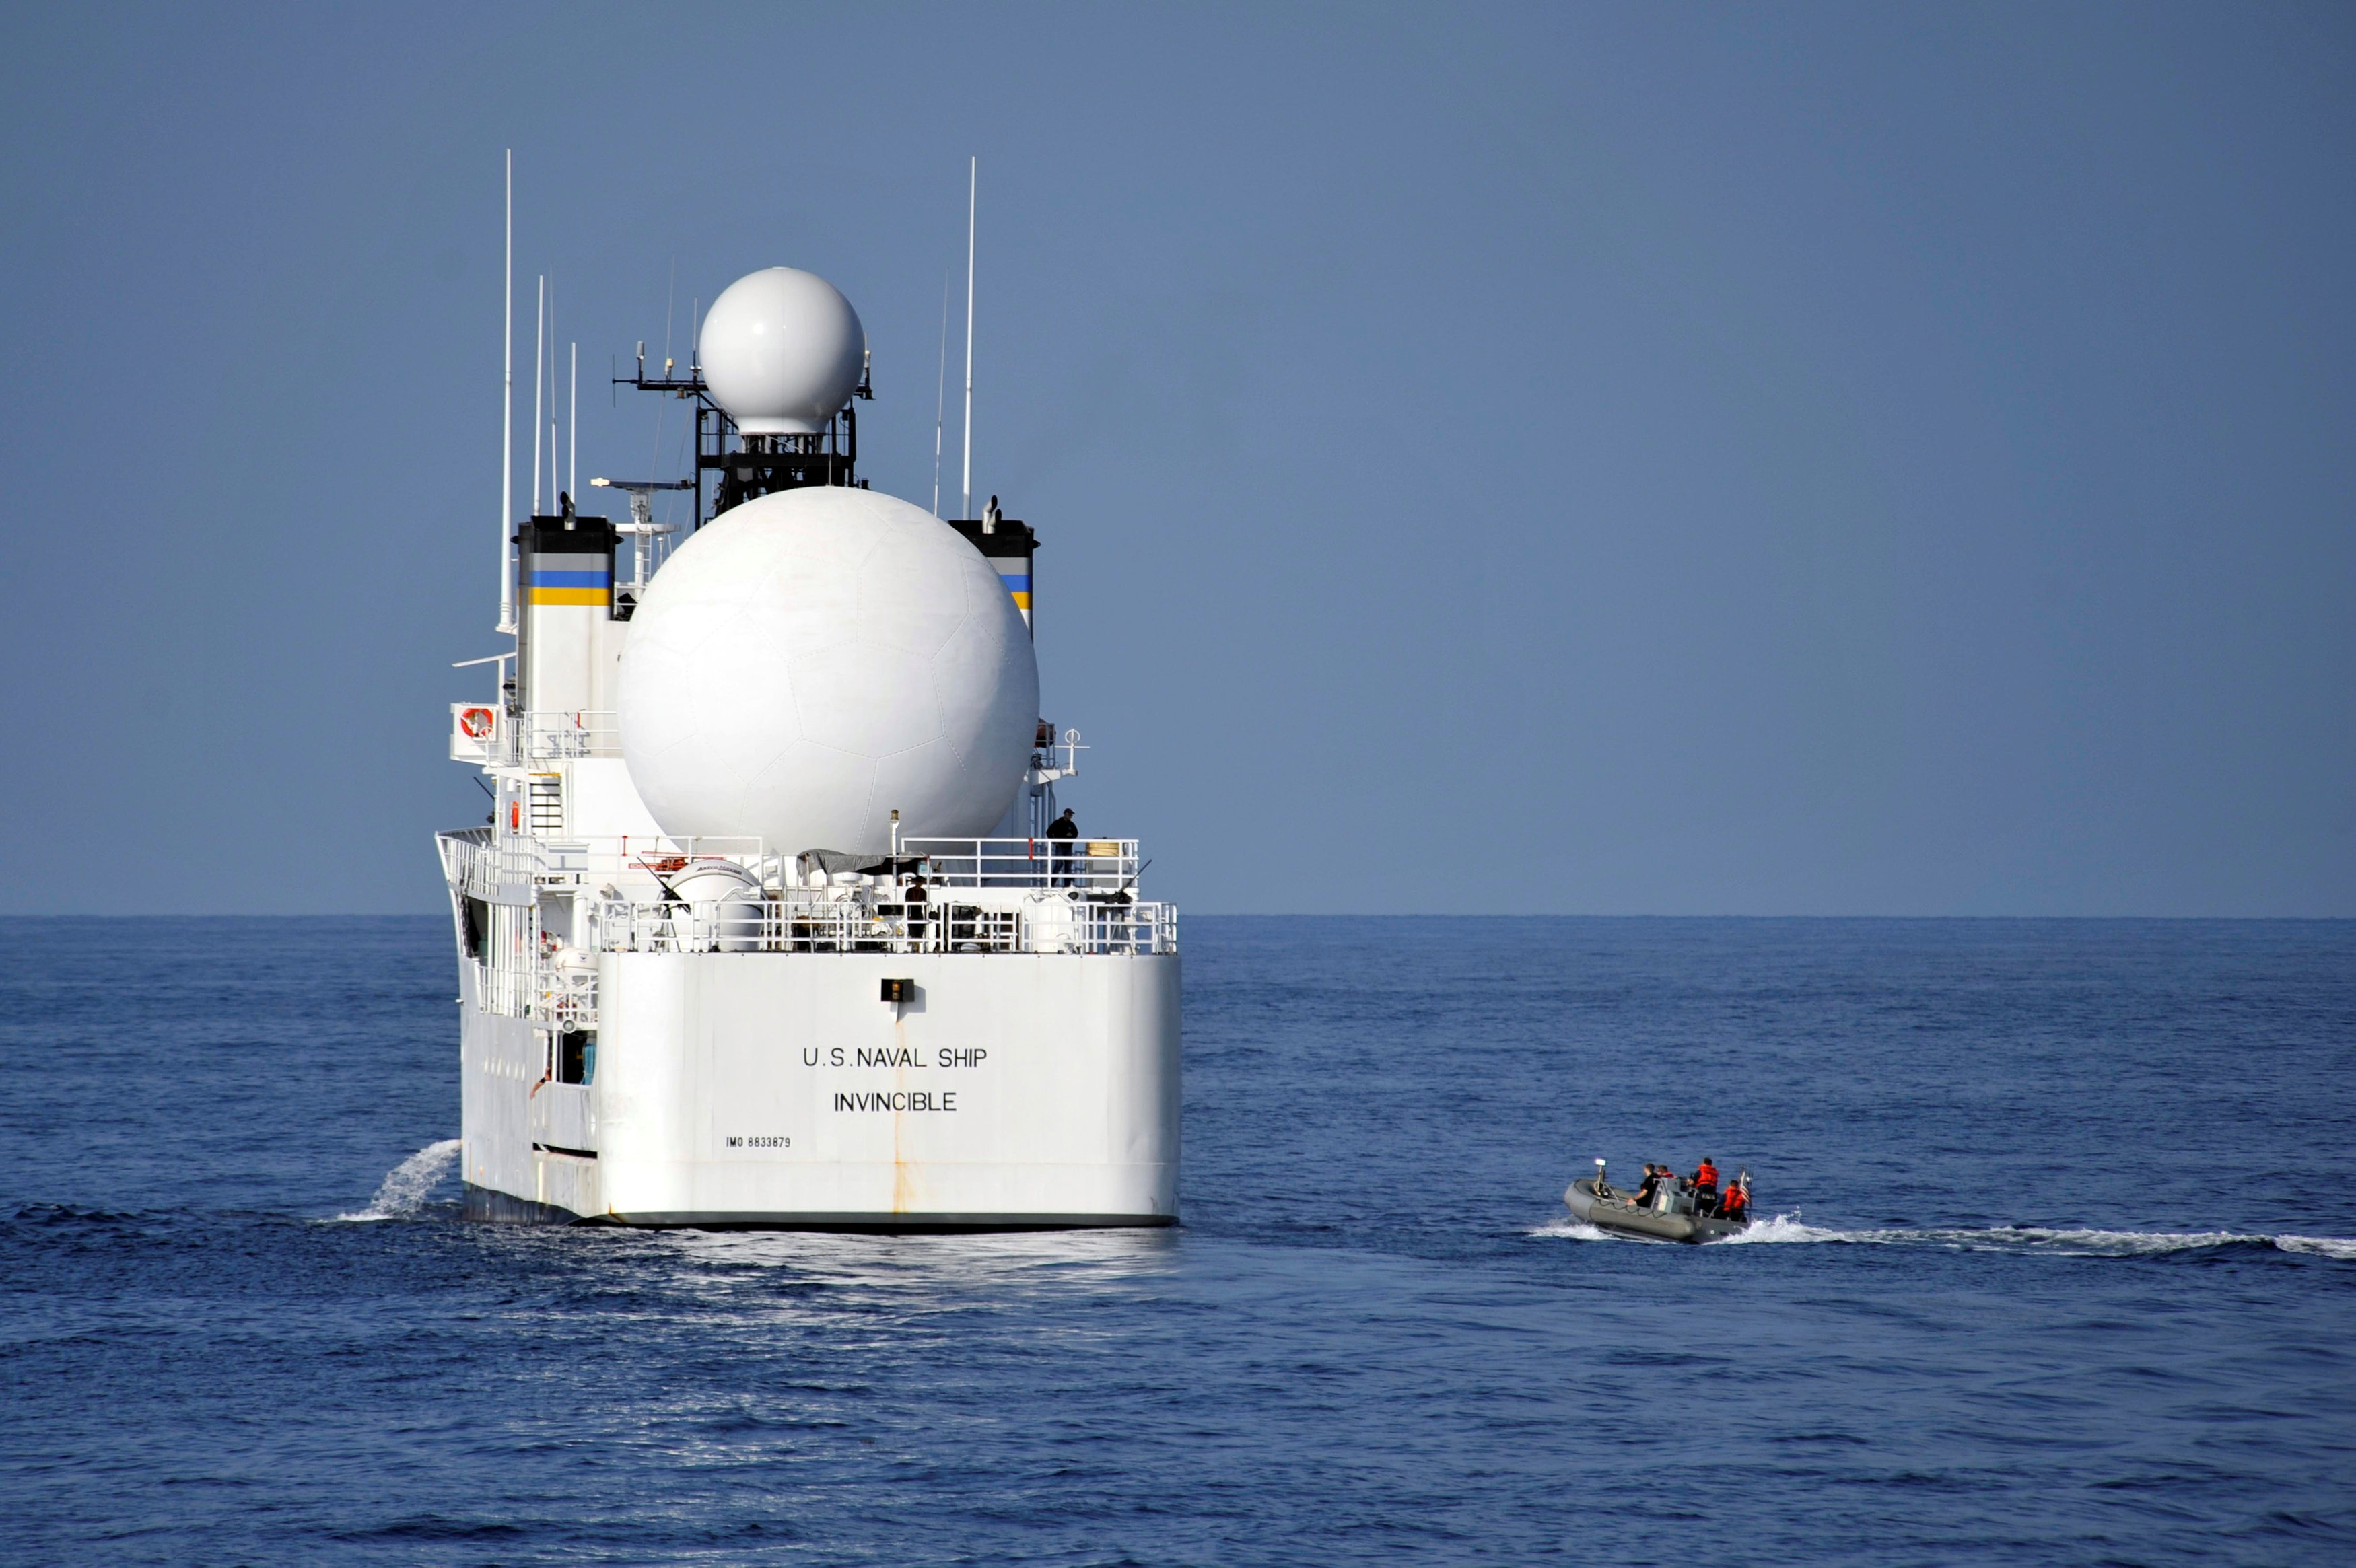 File photo: U.S. sailors in a rigid-hull inflatable boat approach the Military Sealift Command missile range instrumentation ship USNS Invincible (L) to conduct a personnel transfer in Arabian Sea on November 21, 2012. Courtesy Deven B. King/U.S. Navy/Handout via REUTERS